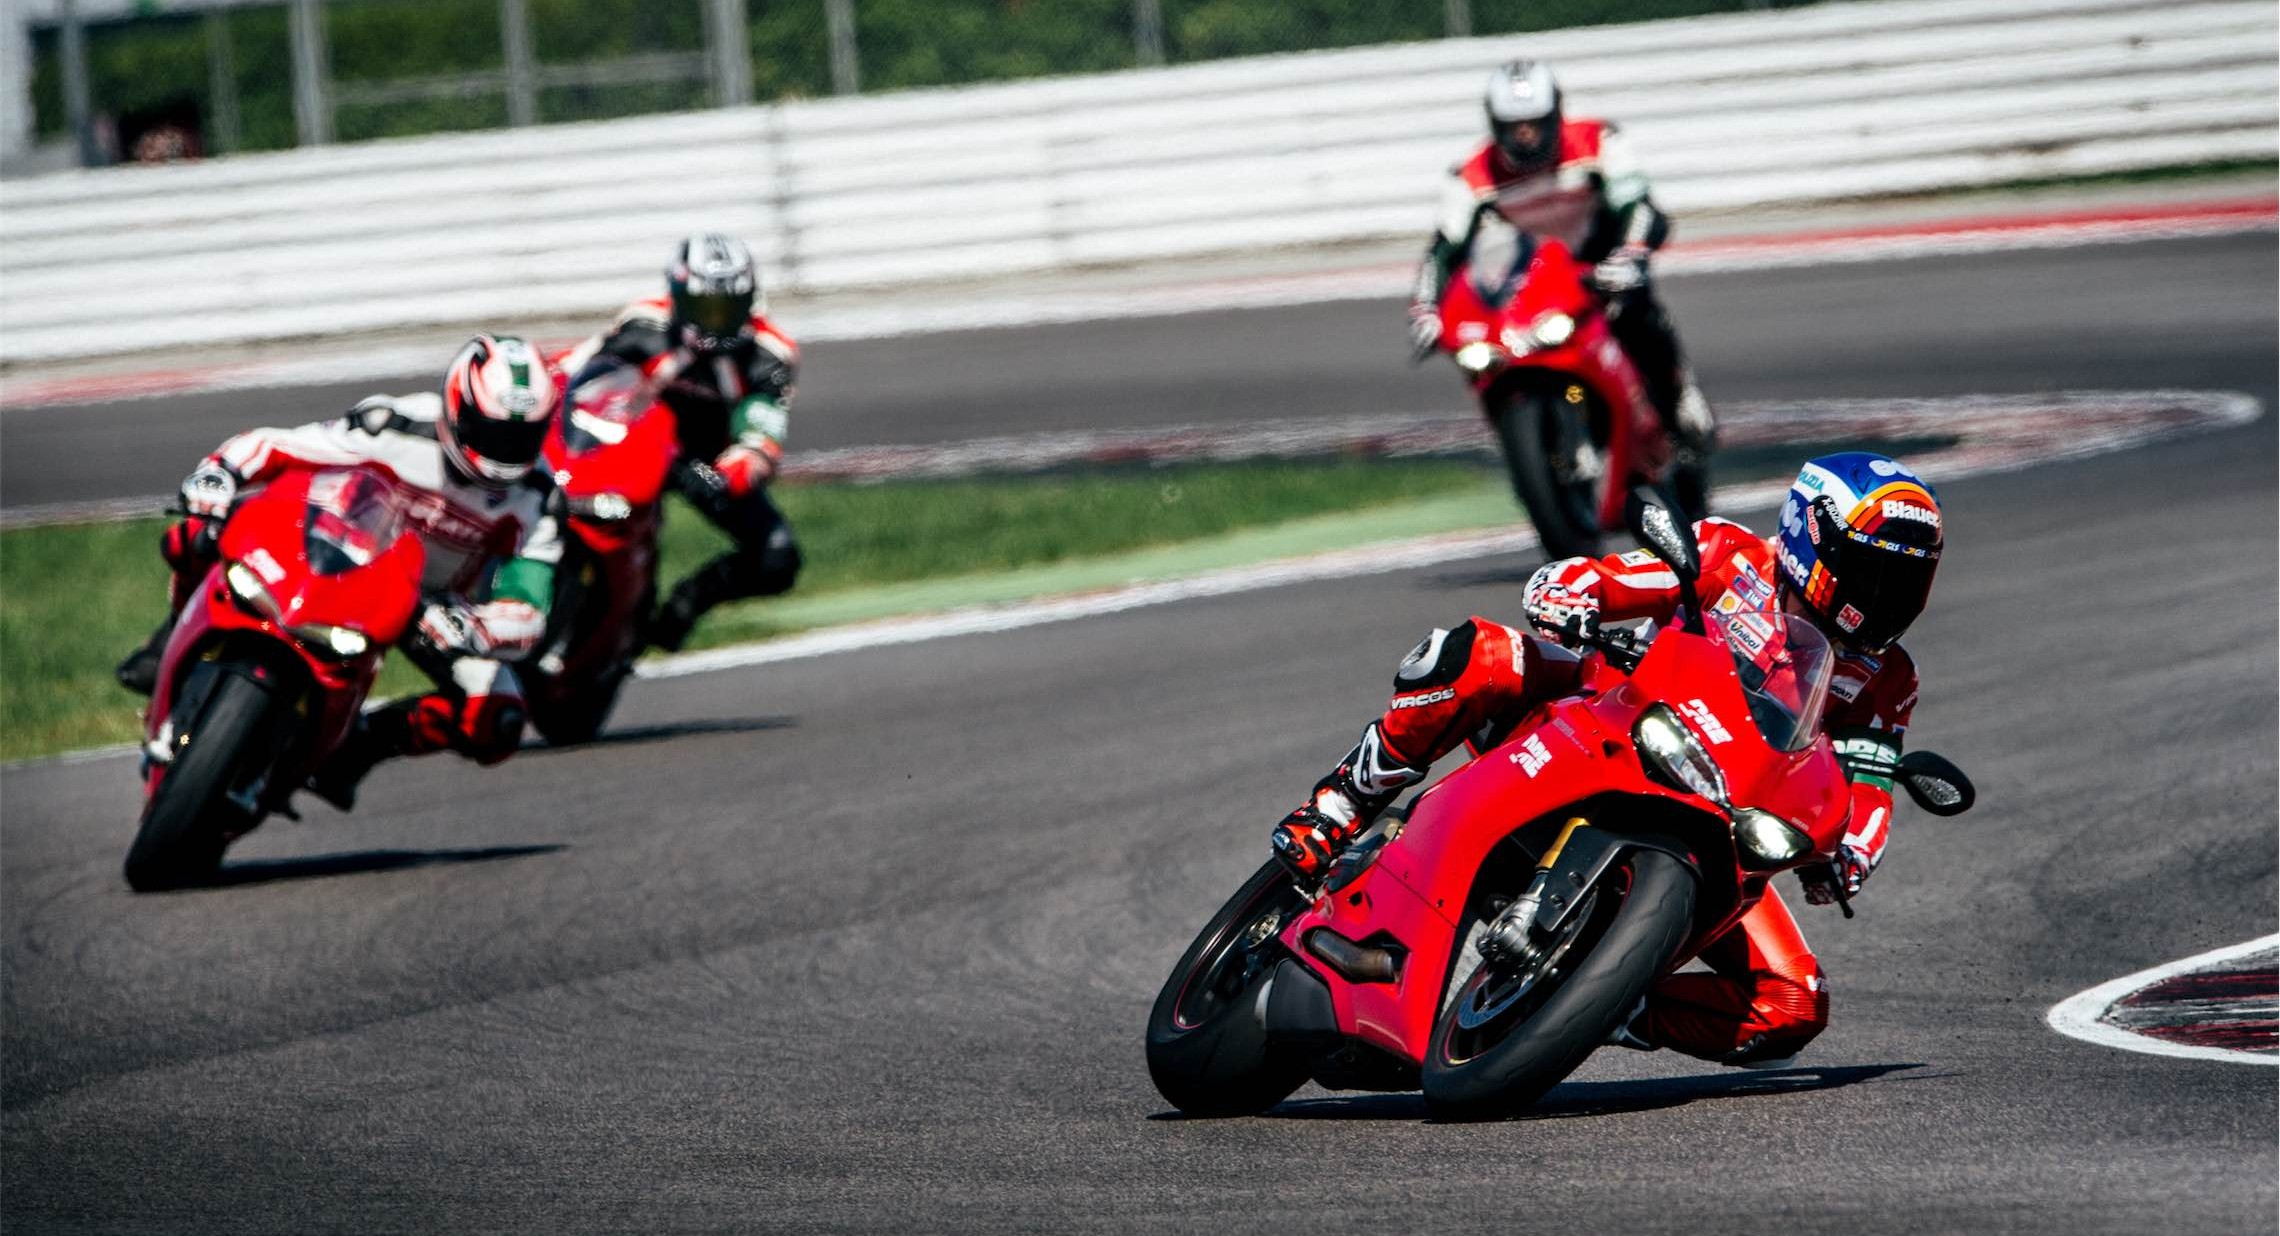 Ducati Riding Experience - Racetrack Academy 2019